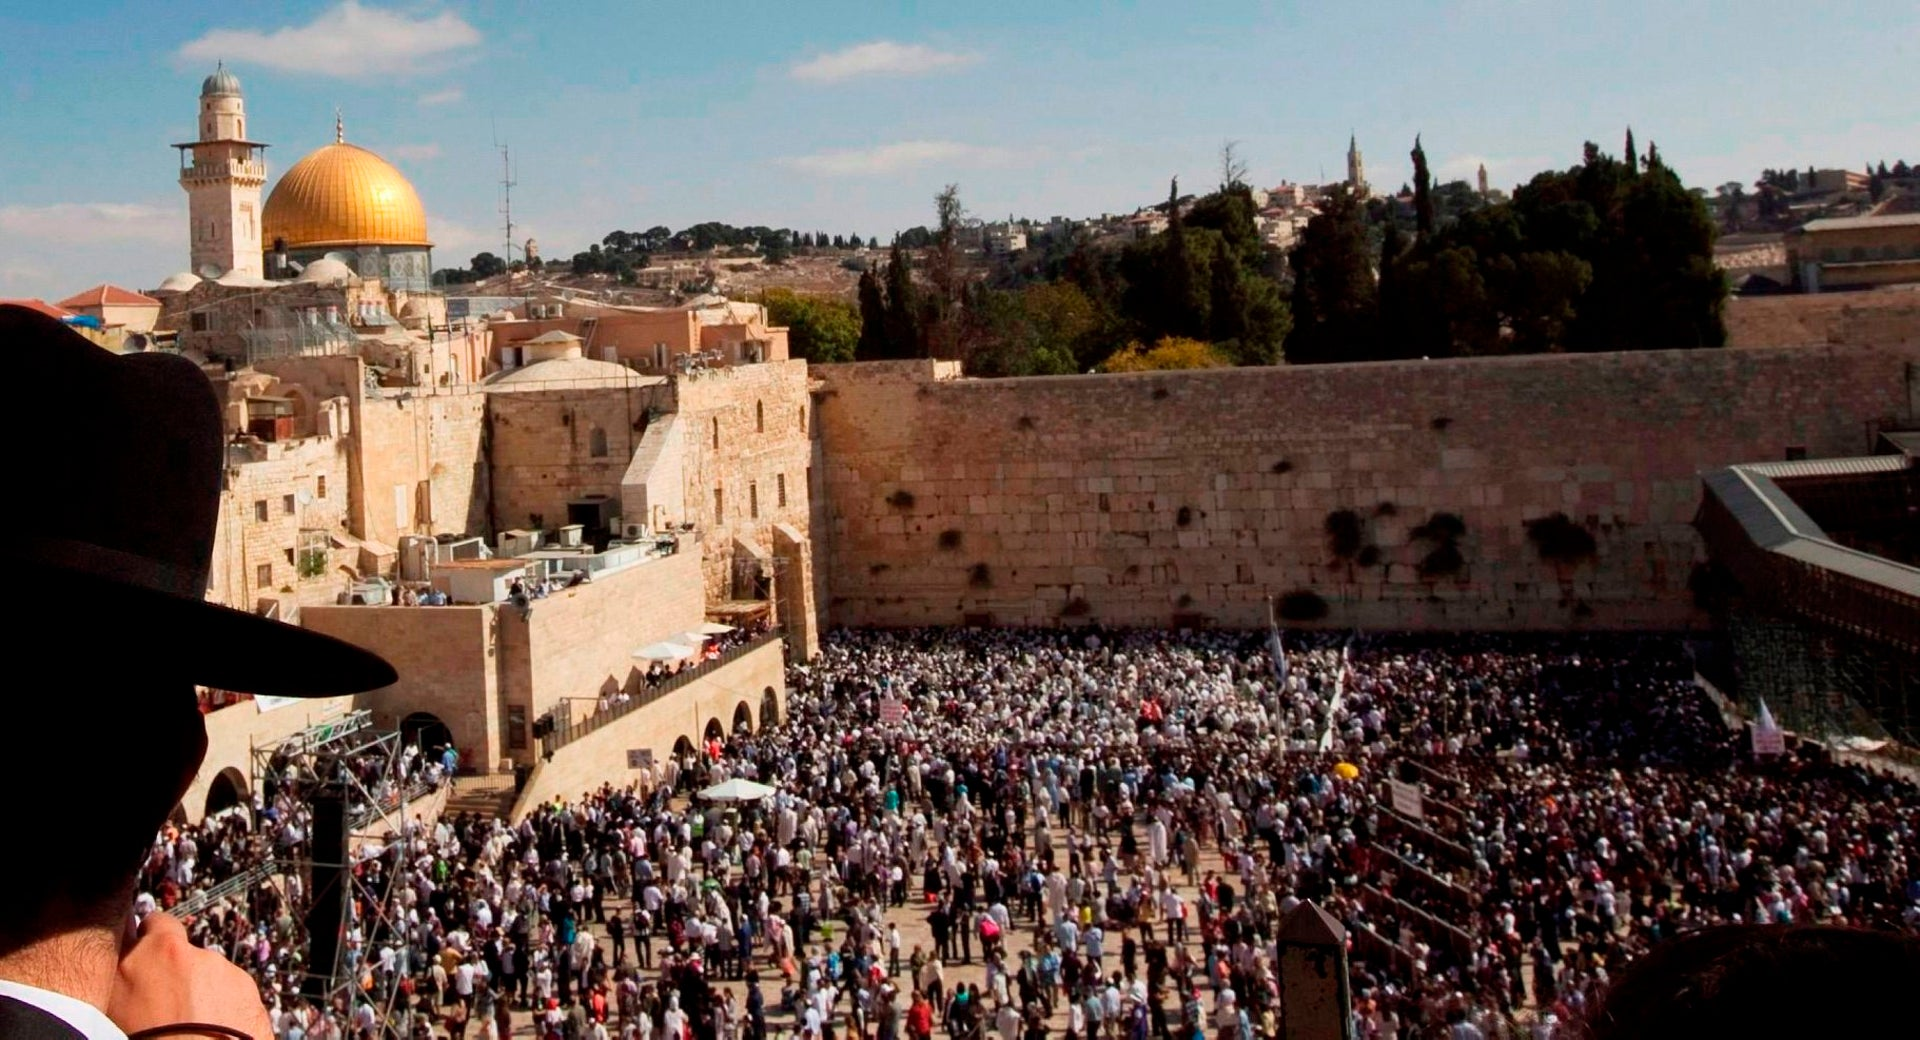 The Western Wall, today